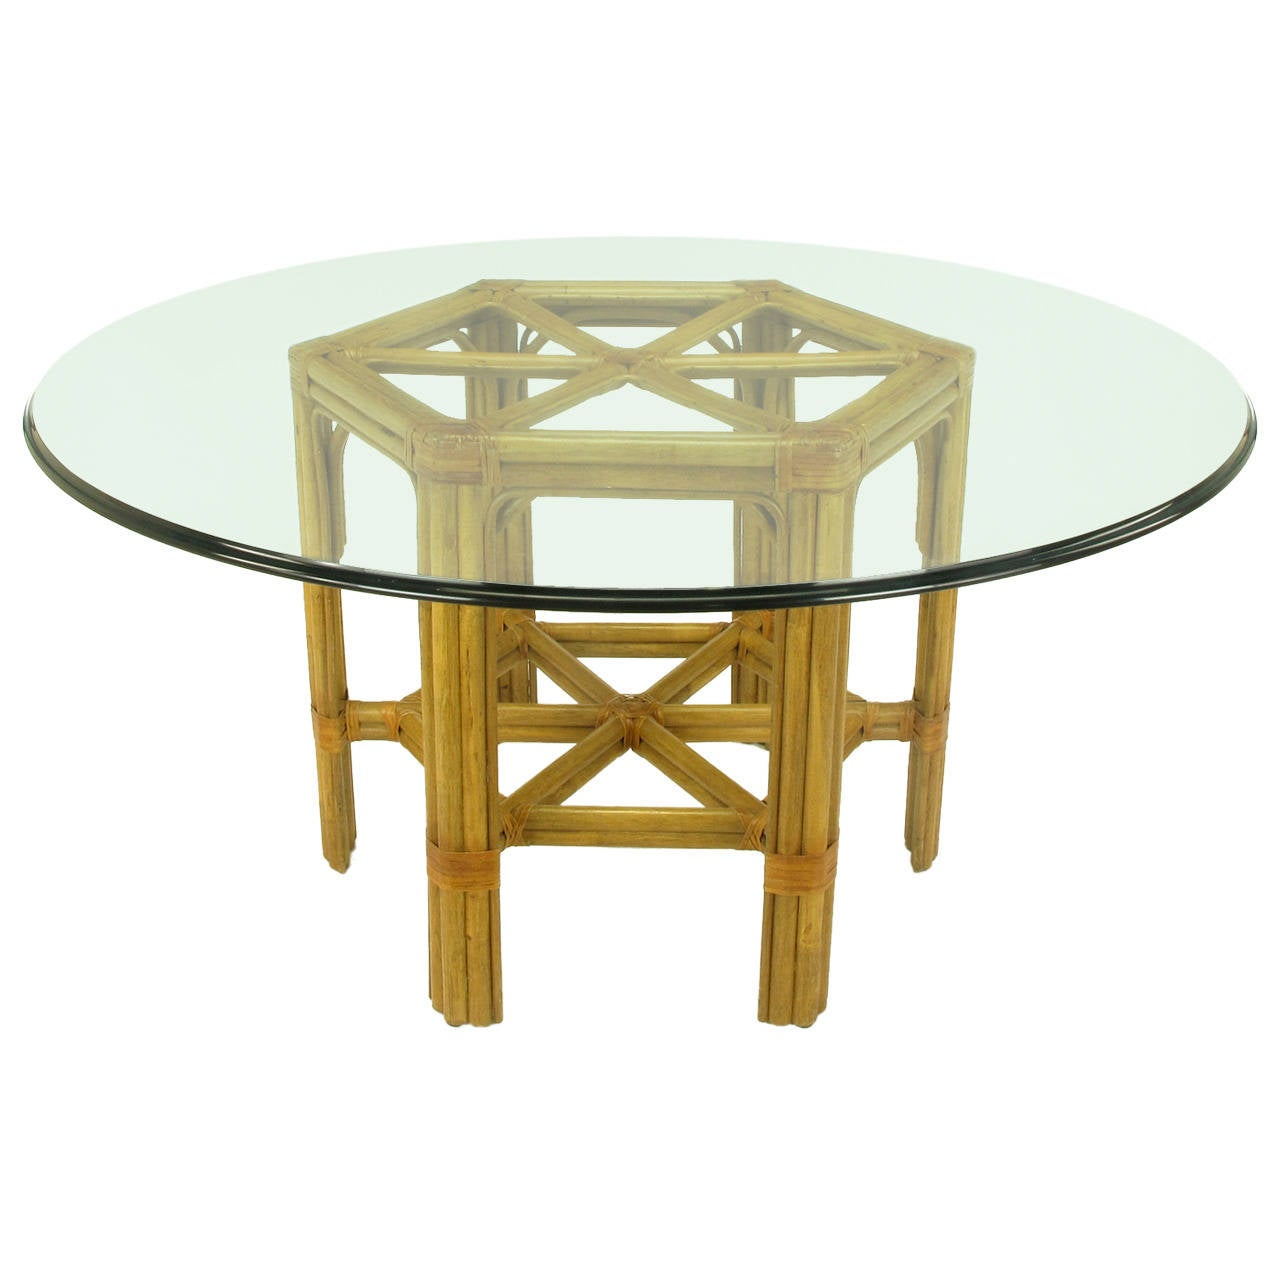 bamboo and rawhide hexagonal dining table after john mcguire at